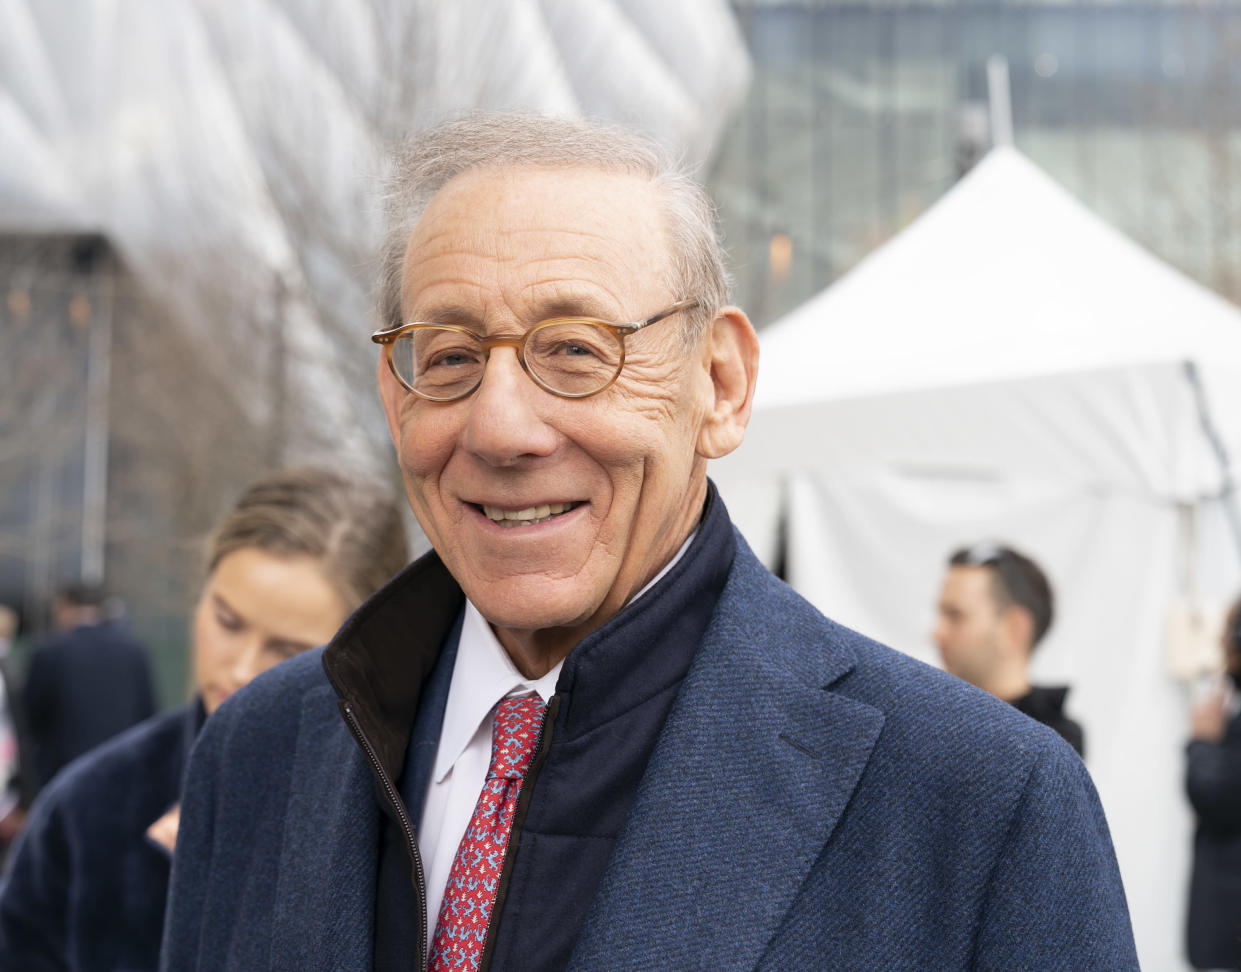 HUDSON YARDS, NEW YORK, UNITED STATES - 2019/03/15: Hudson Yards is lagest private development in New York. Chairman of Related Companies Stephen Ross attends opening day at Hudson Yards of Manhattan. (Photo by Lev Radin/Pacific Press/LightRocket via Getty Images)